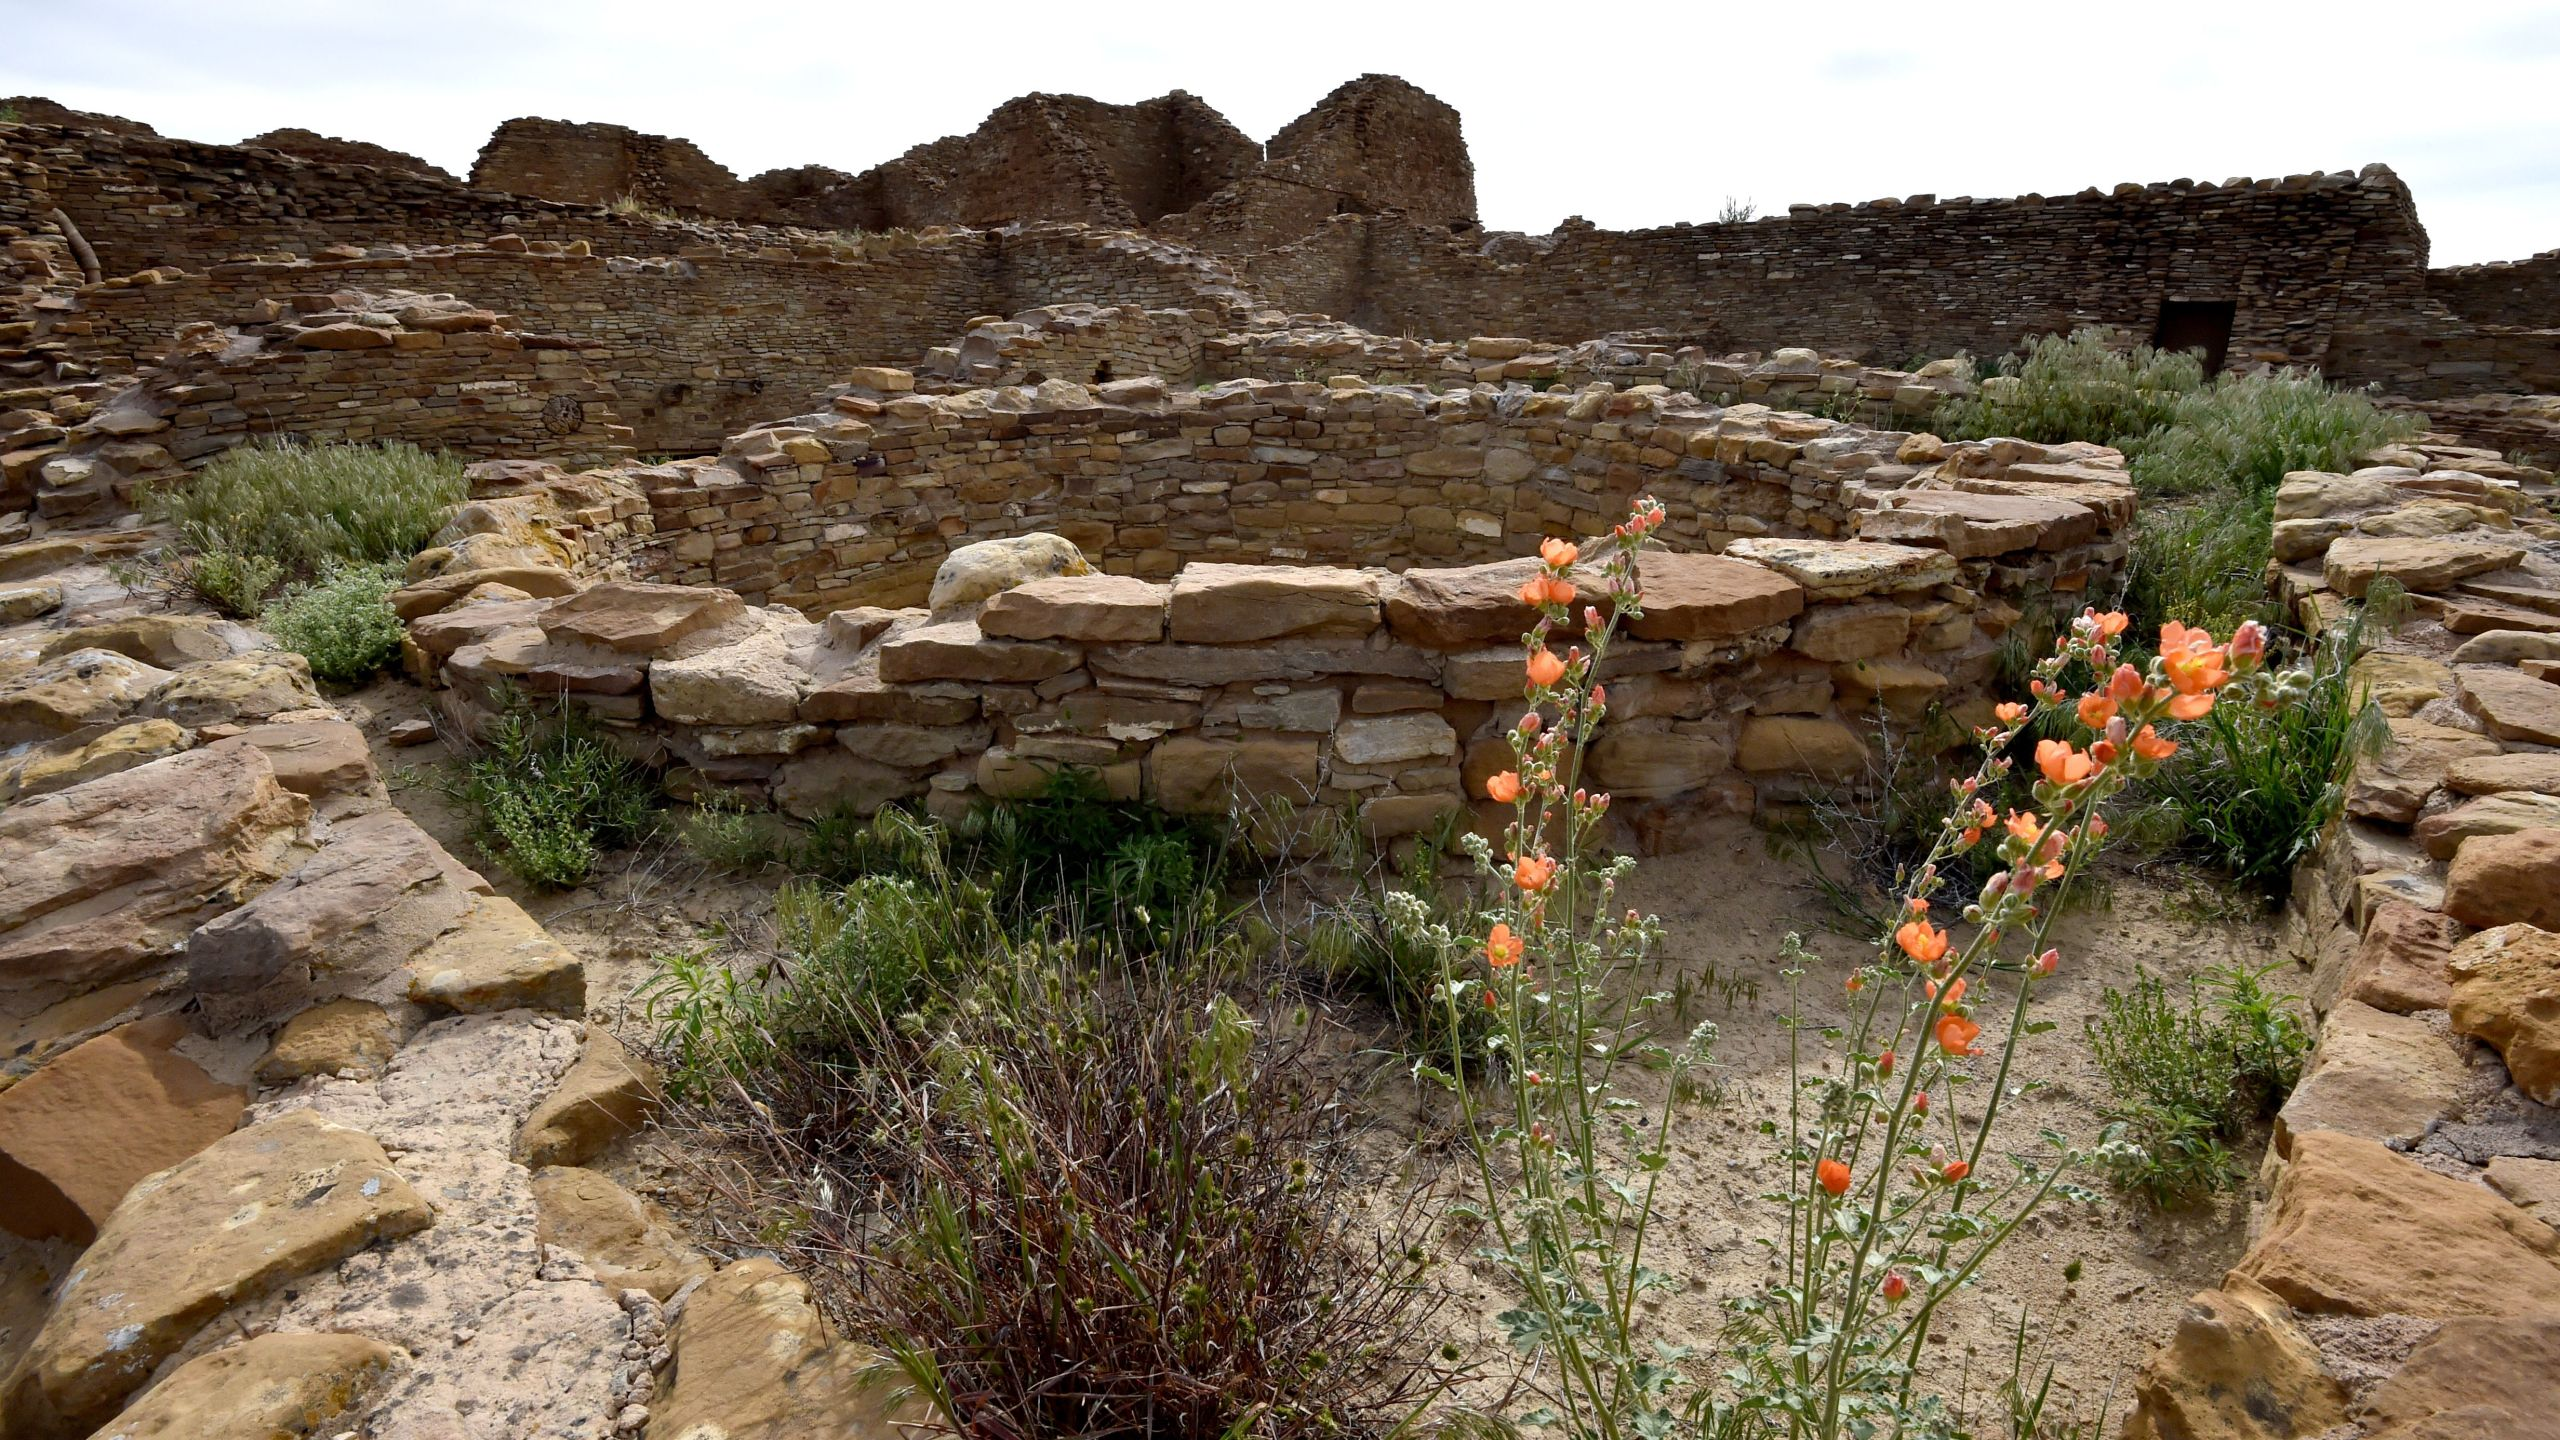 The ruins of Pueblo del Arroyo house built by Ancient Puebloan People is seen at Chaco Culture National Historical Park on May 20, 2015. (Credit: Mladen Antonov/AFP/Getty Images)